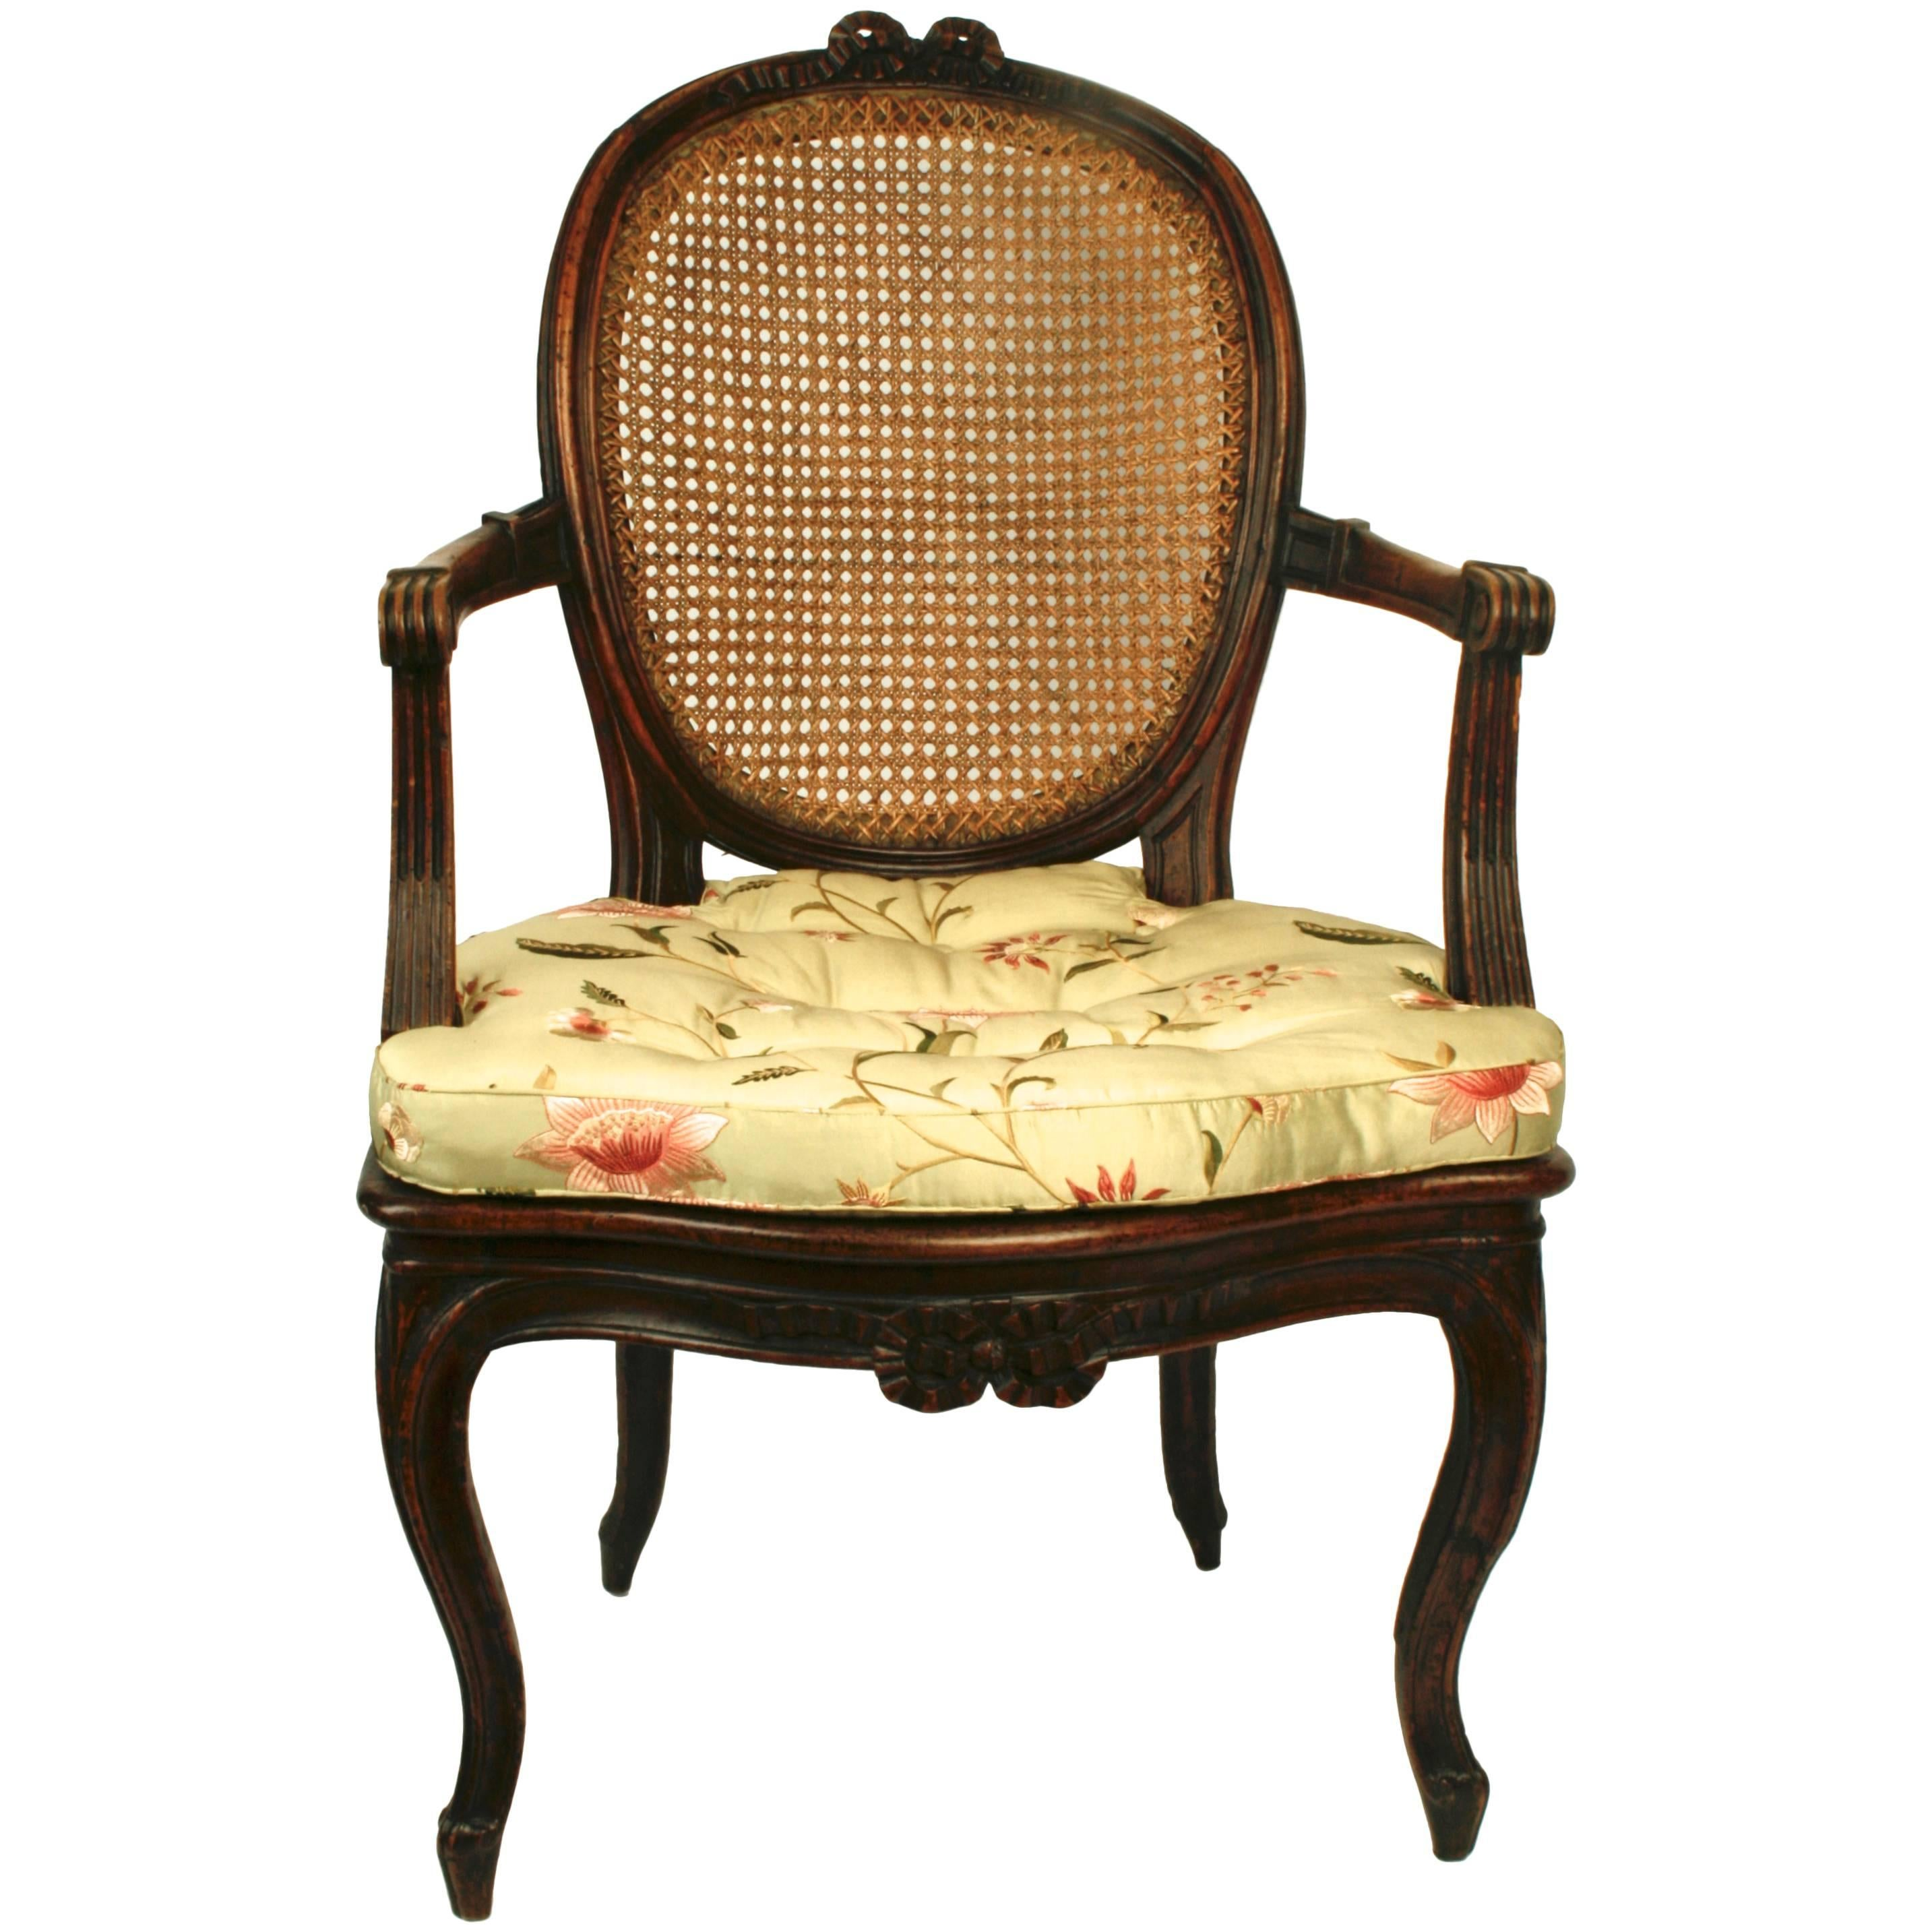 Fauteuil En Cabriolet Louis Xv Carved And Caned Fauteuil En Cabriolet C1750